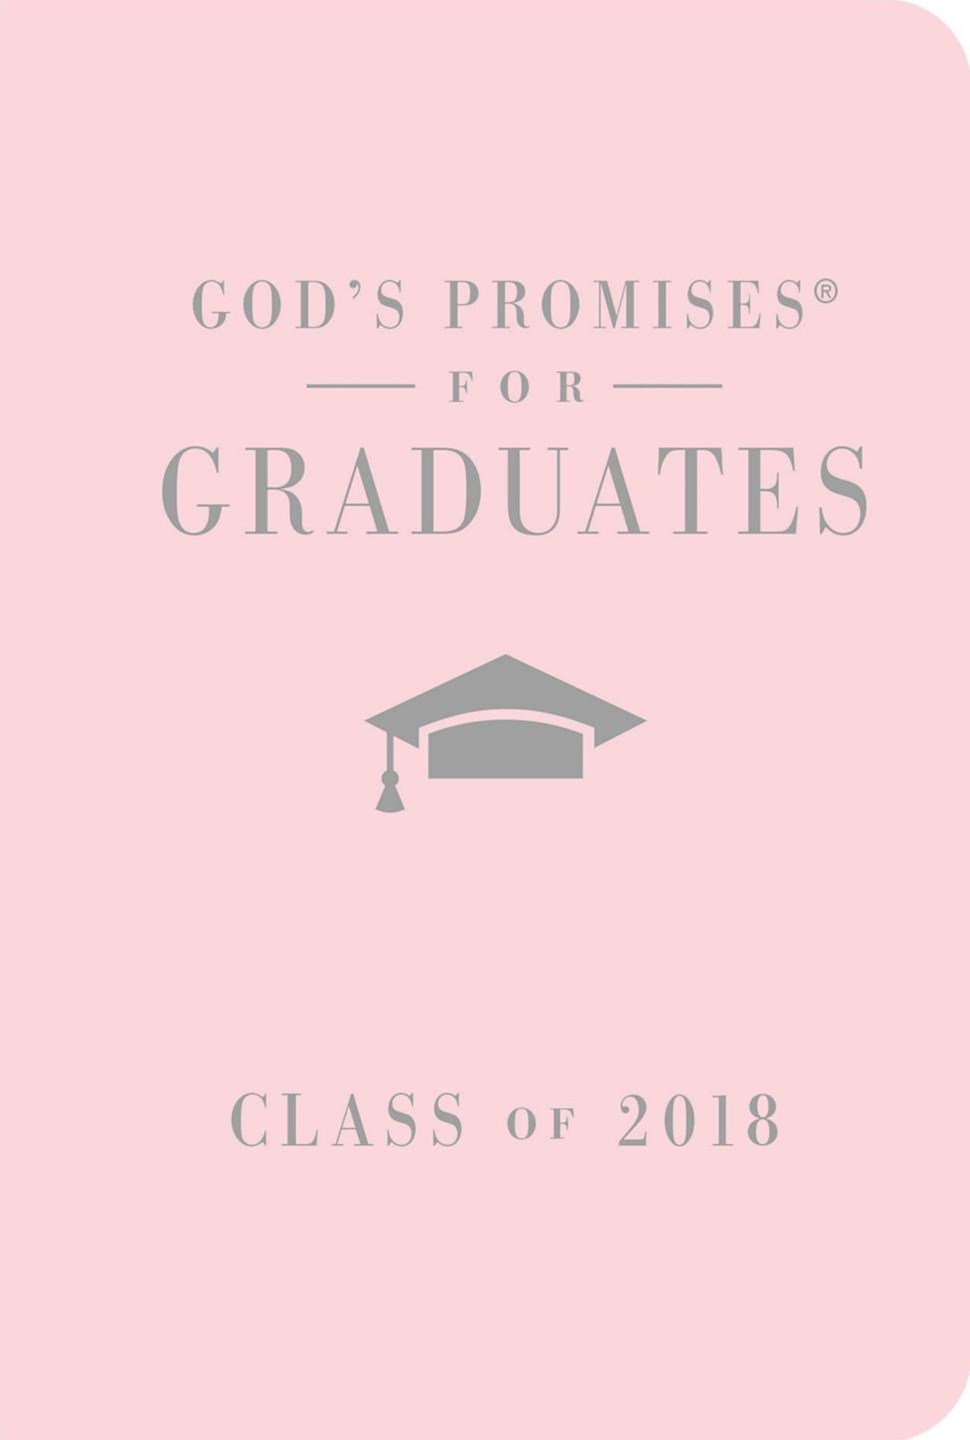 God's Promises For Graduates: Class Of 2018 [Pink]